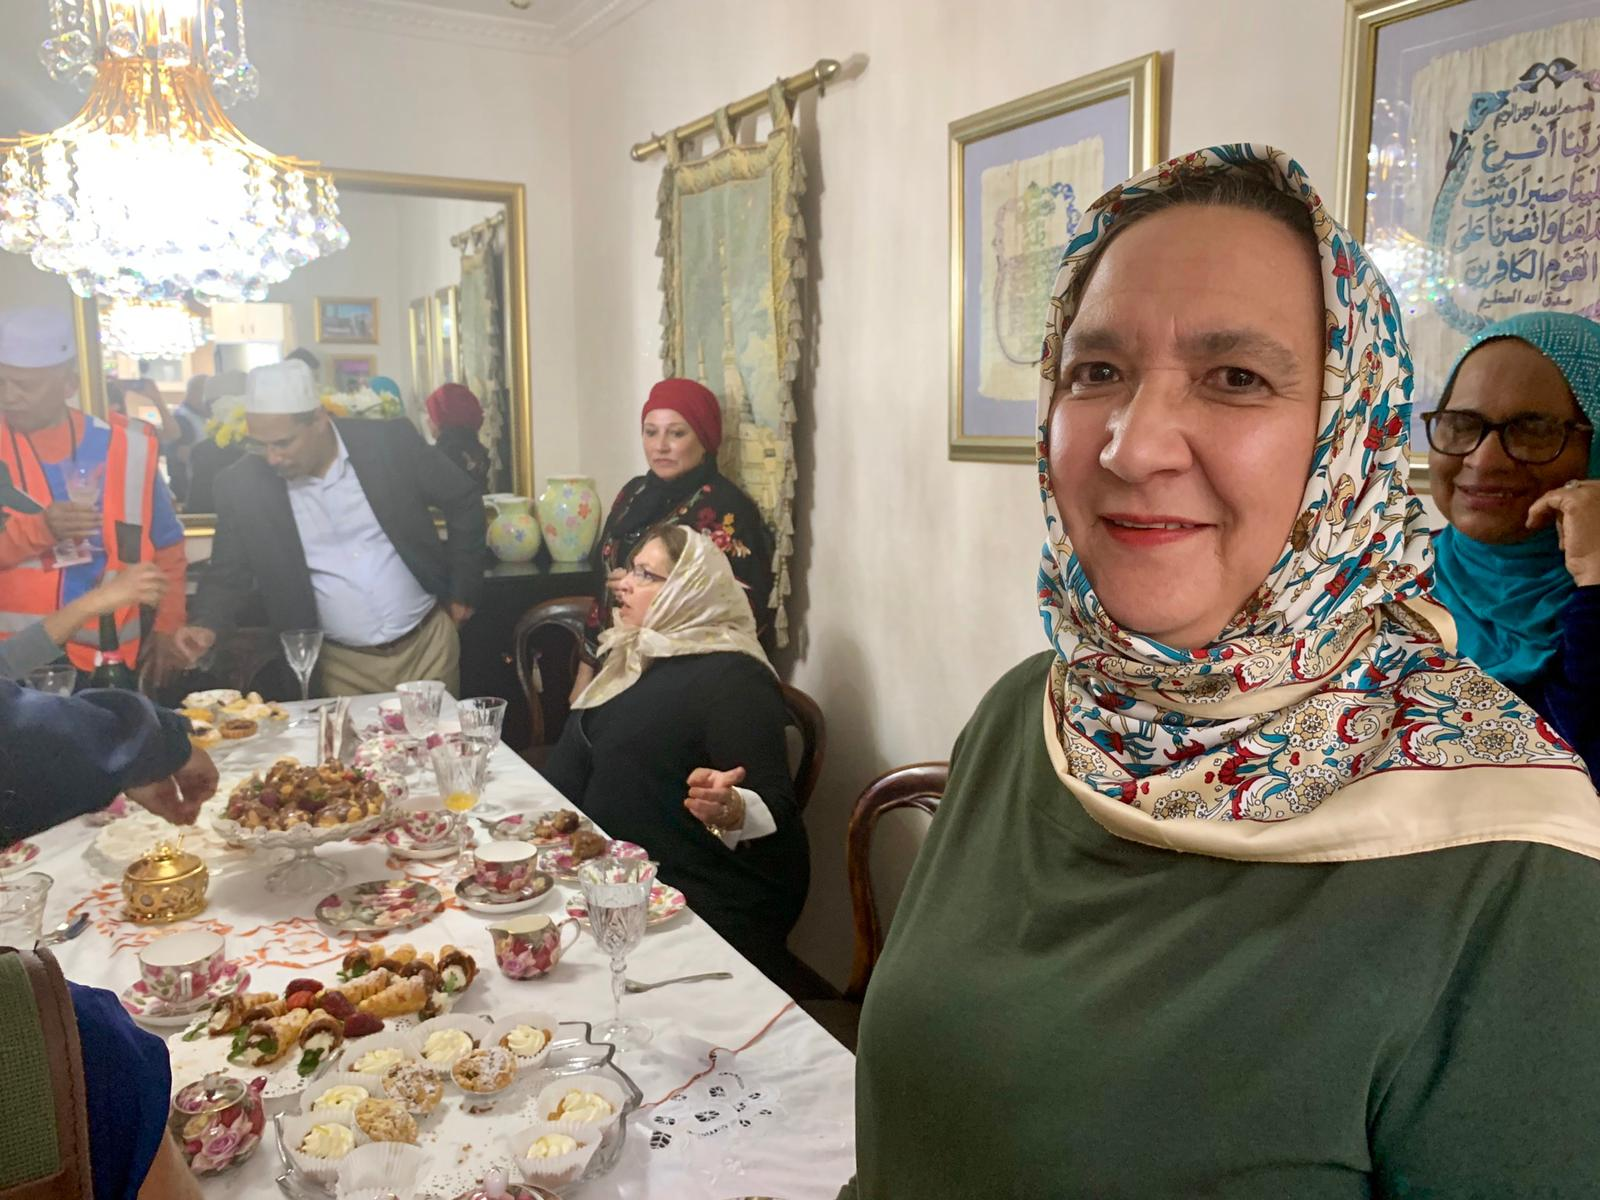 Nazli Edross-Fakier met Harry and Meghan when they visited her sister's home in Bo-Kaap, Cape Town.